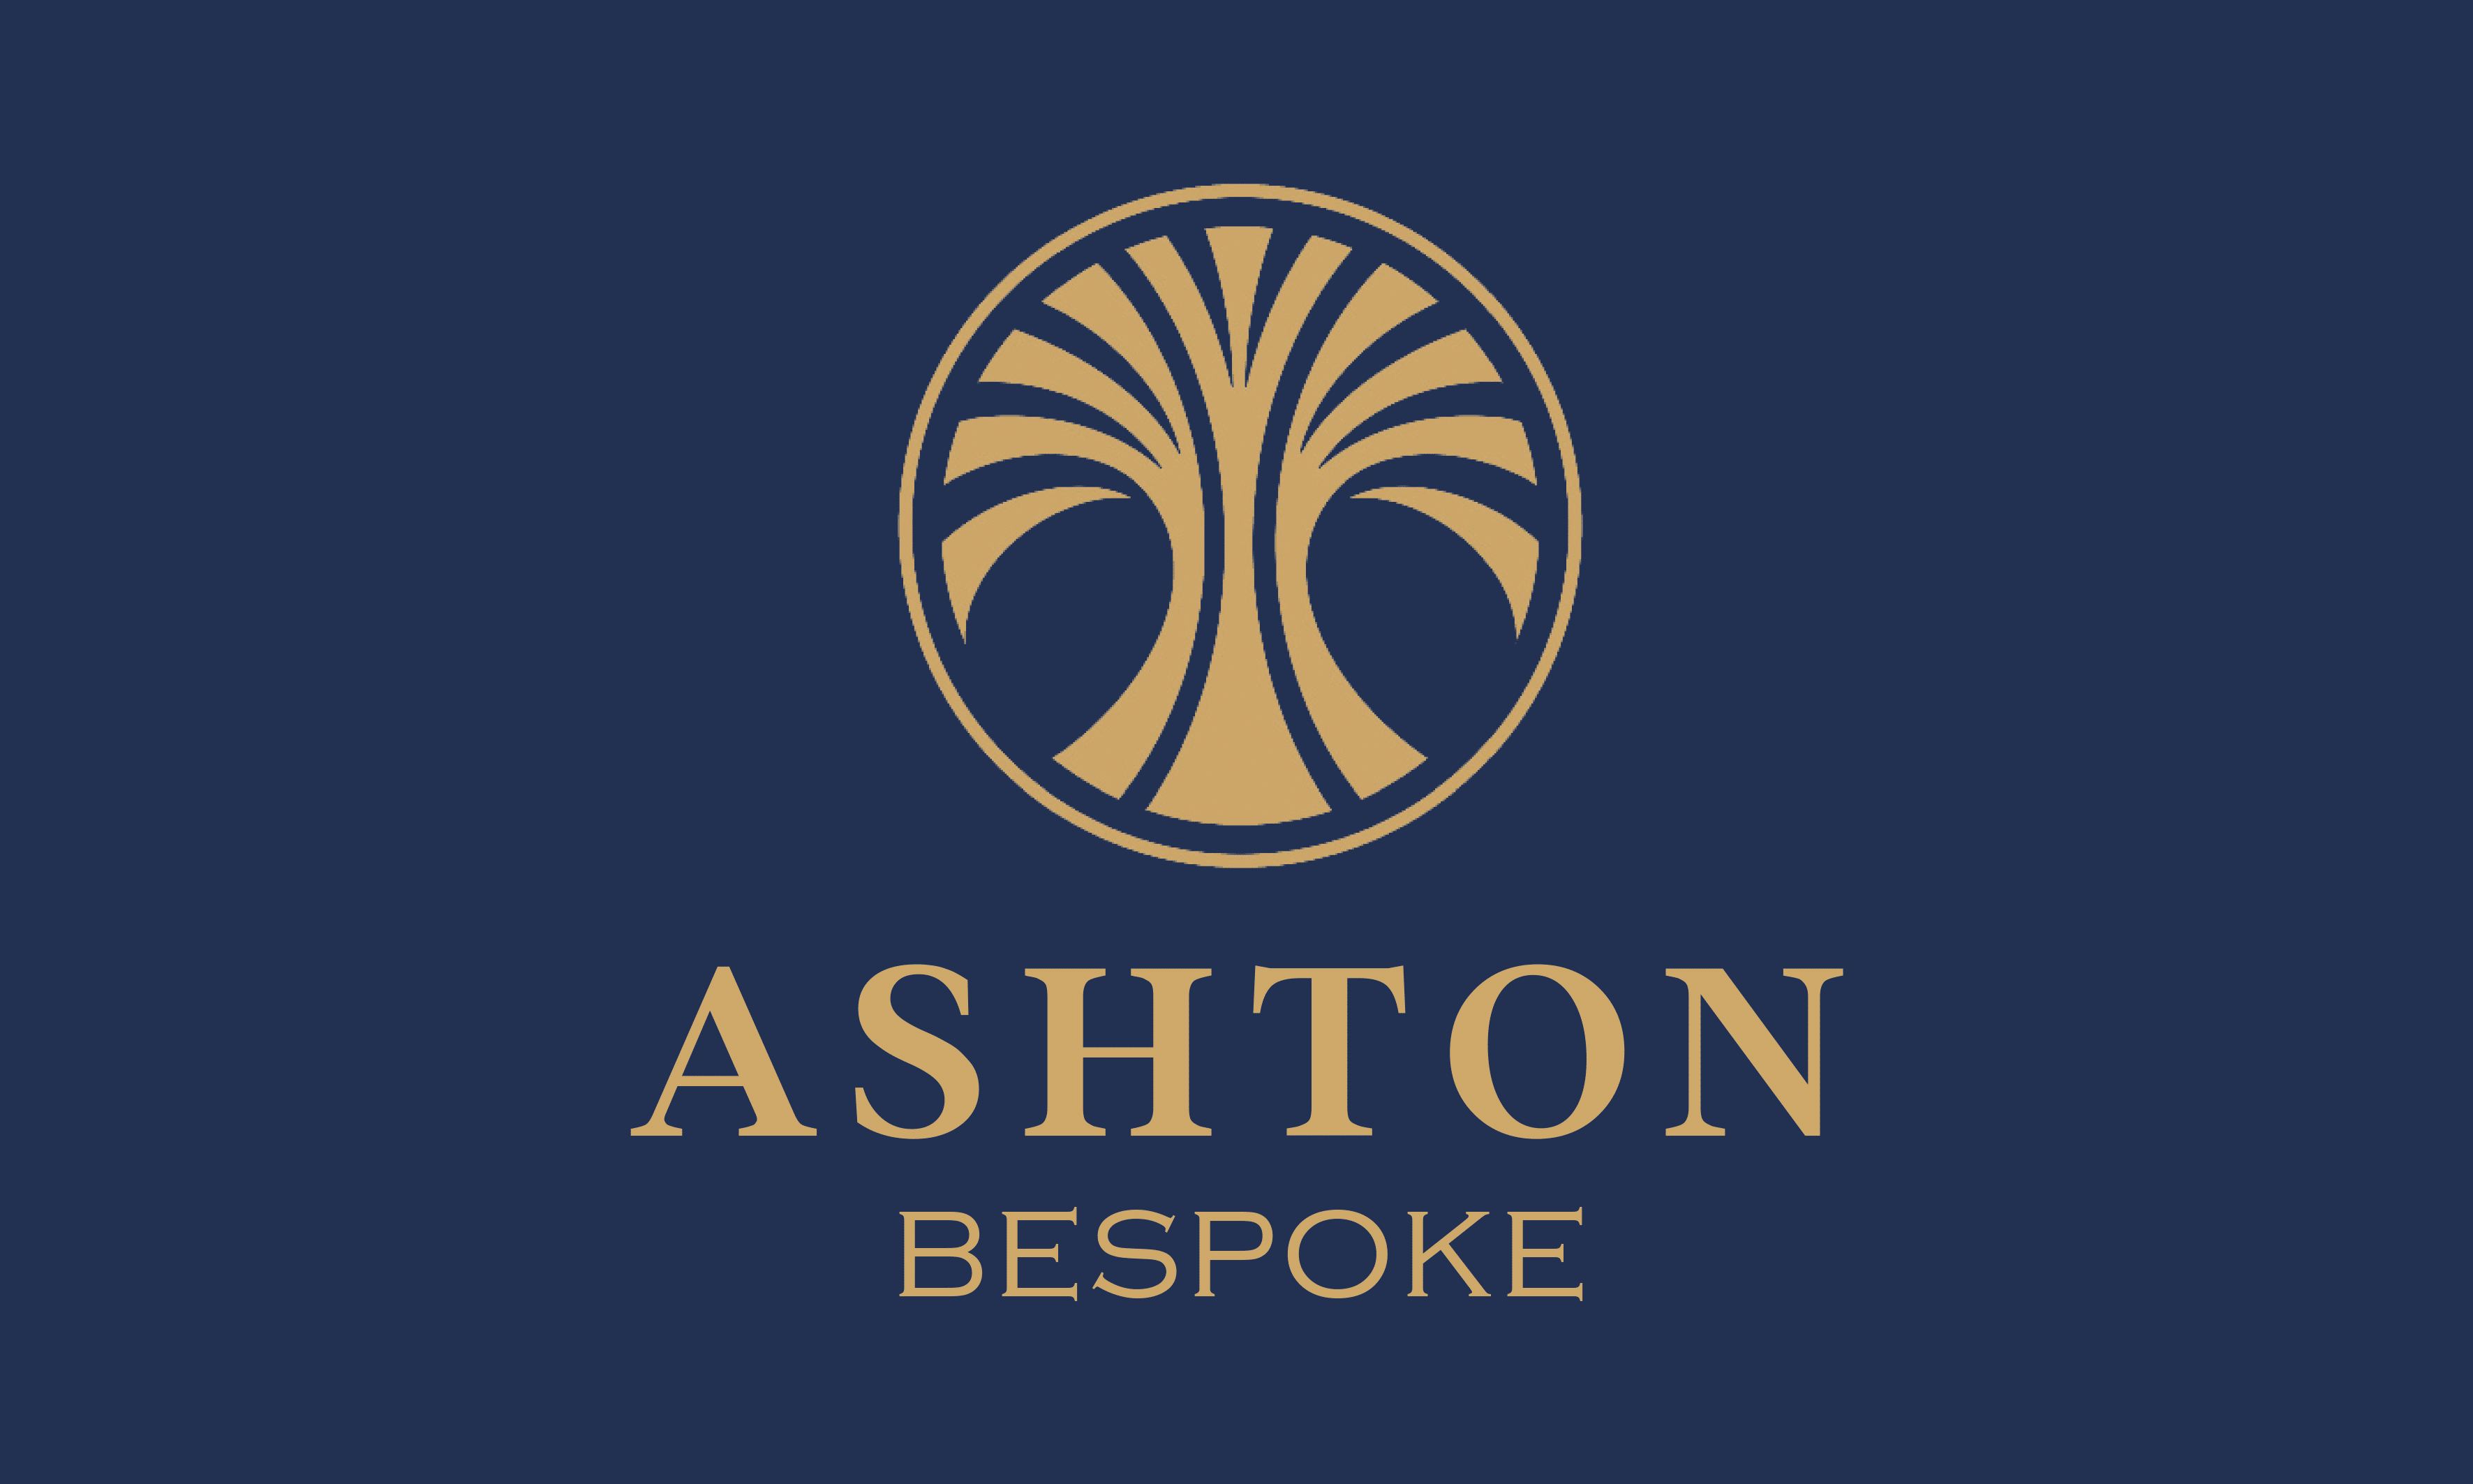 Ashton Bespoke Gold/Blue Logo